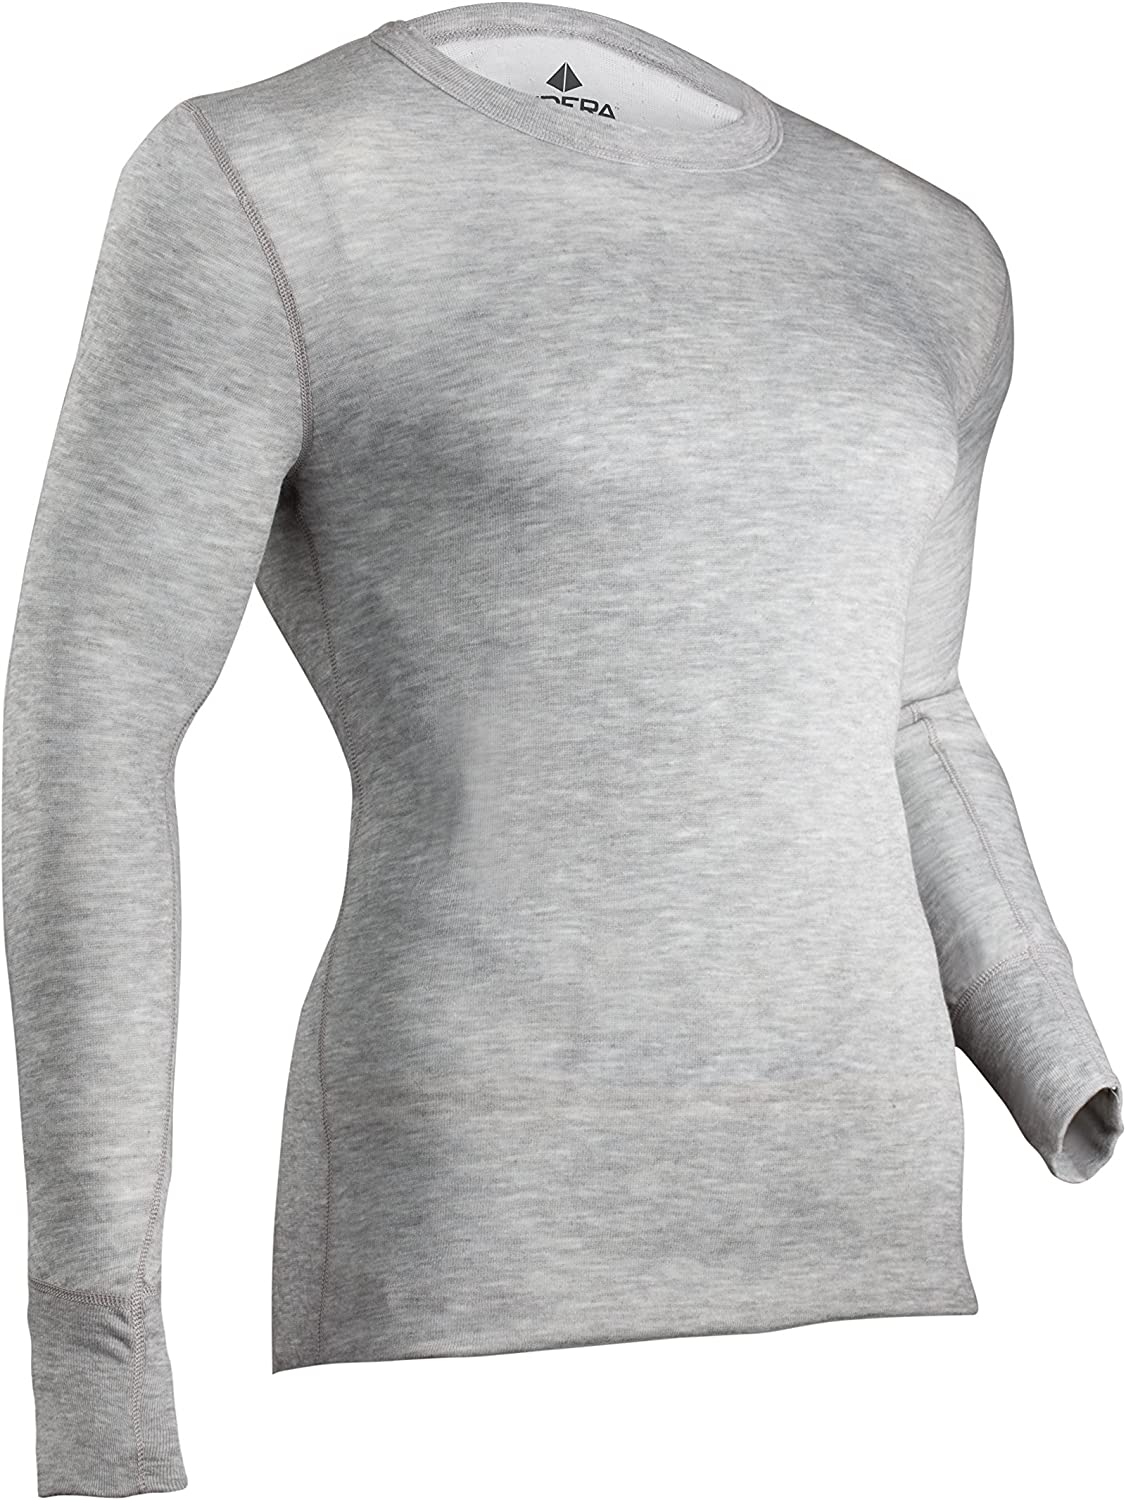 Indera Men's Two-Layer Performance Thermal Underwear Top with Silvadur